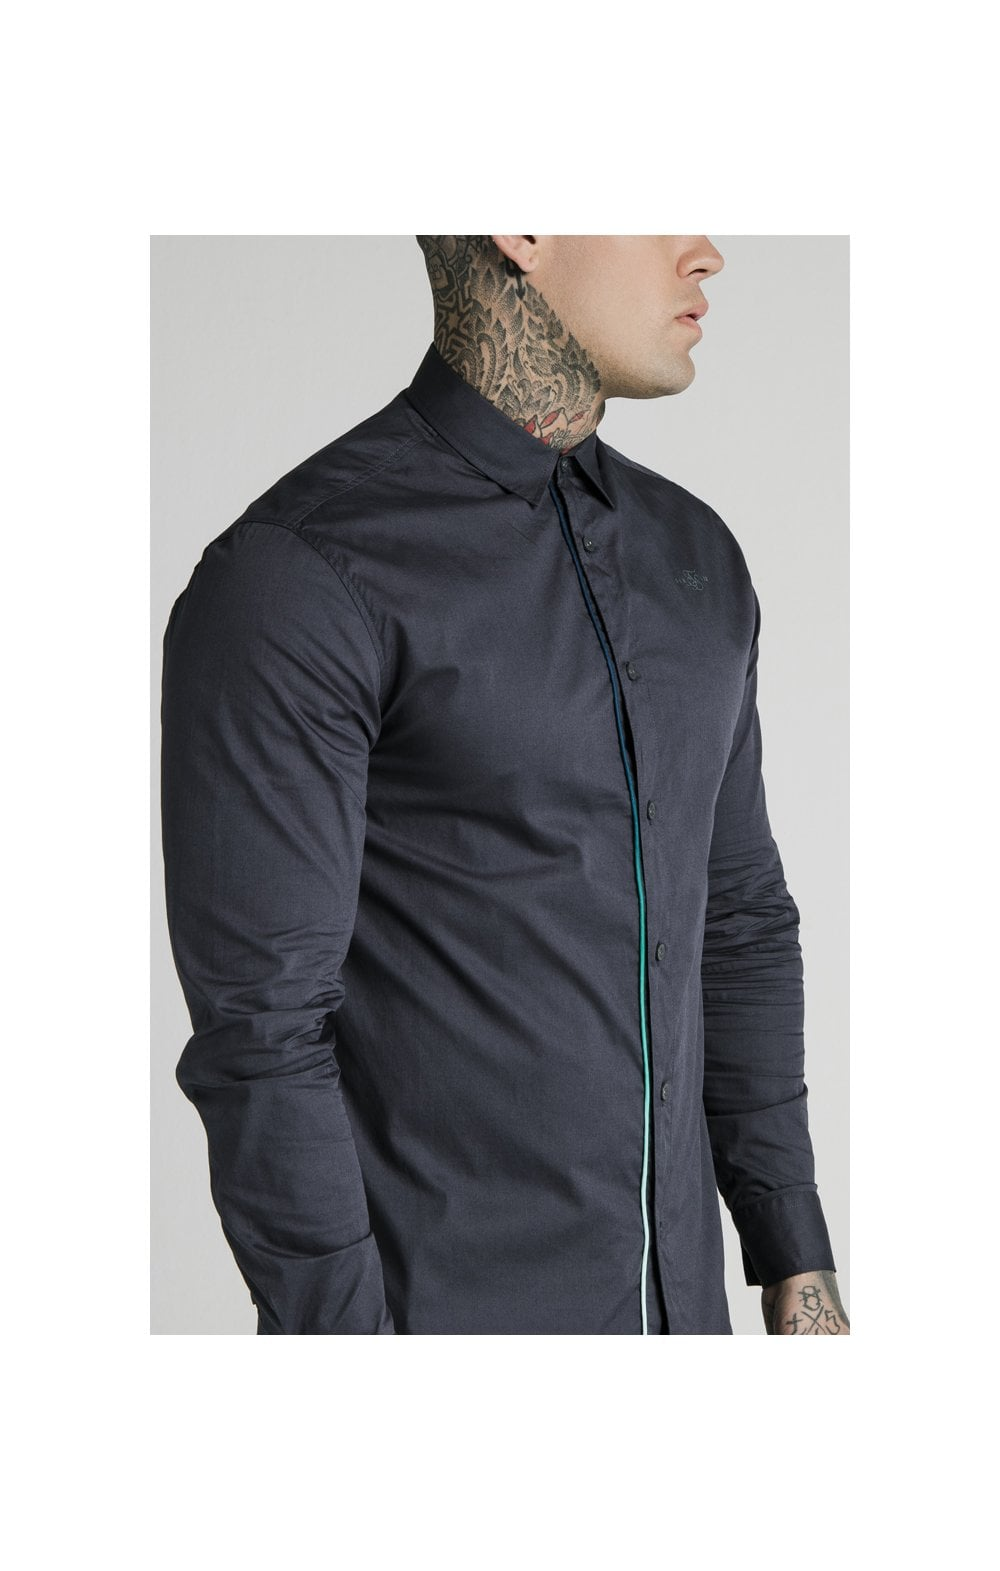 SikSilk L/S Fade Piping Shirt - Navy (2)